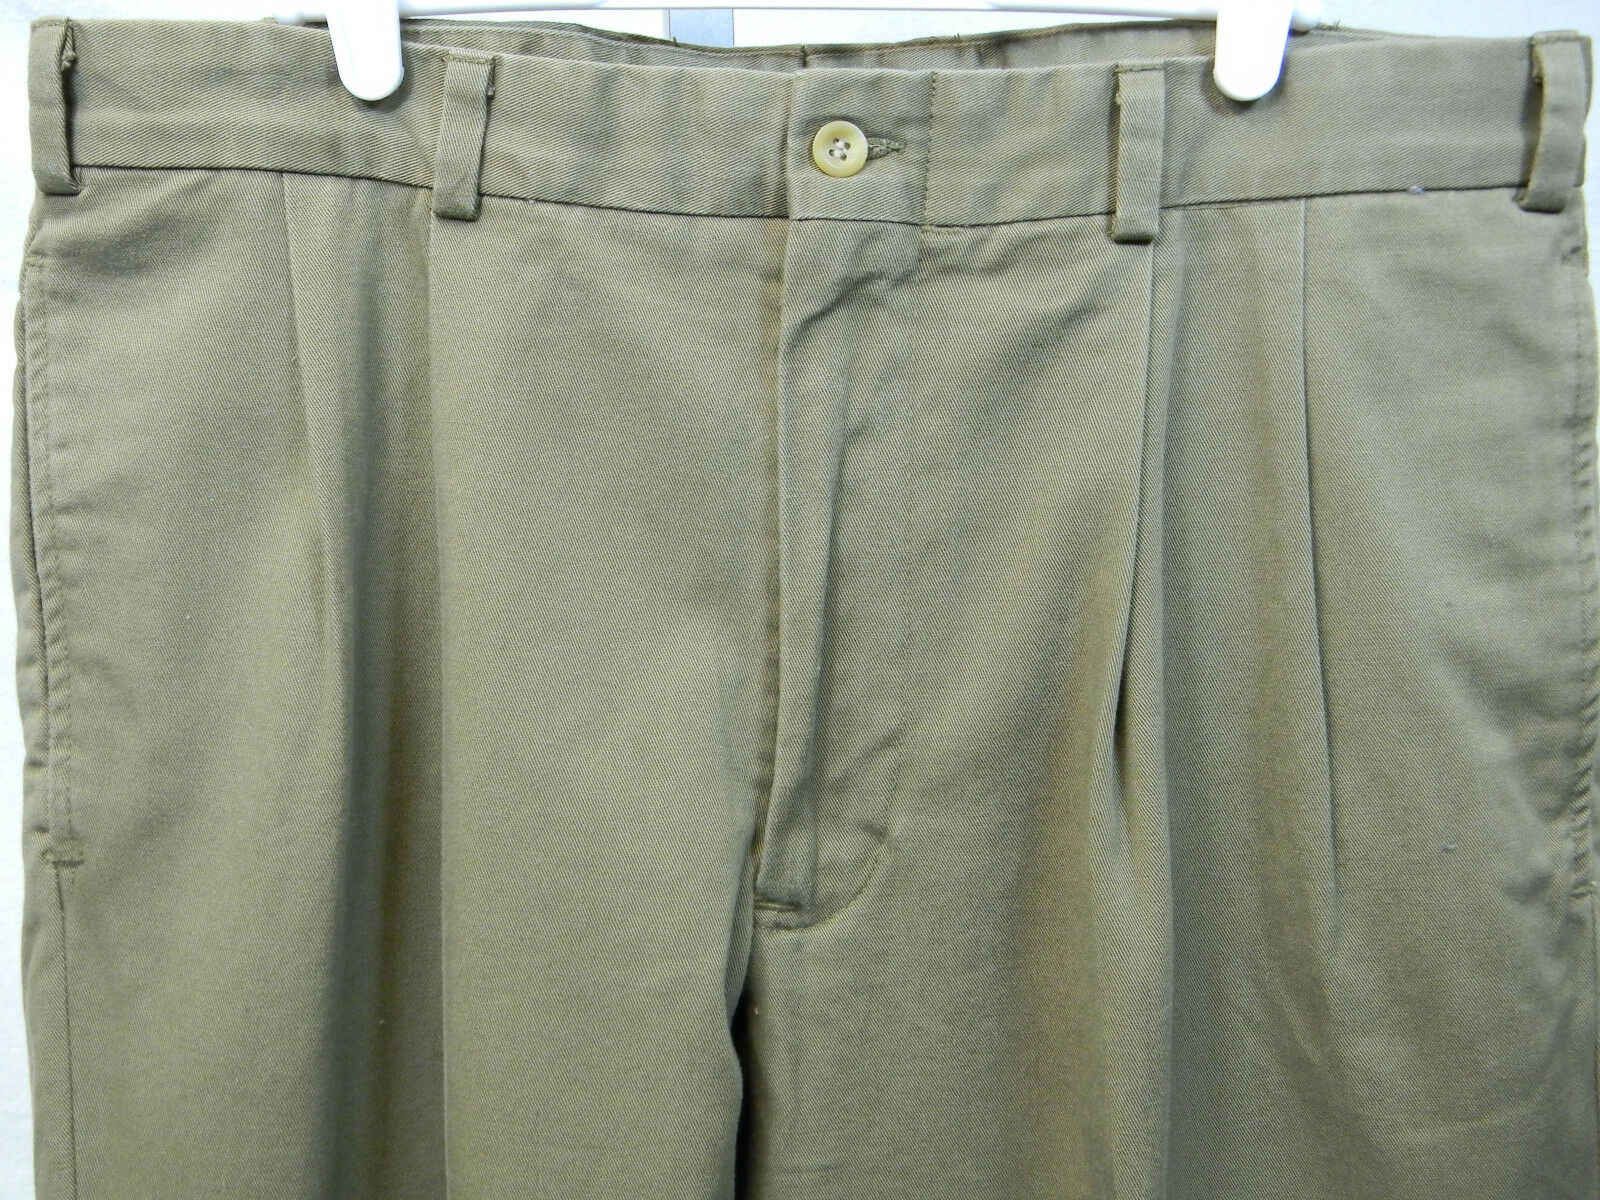 NWT Bills Khakis mushroom twill M2P pleated 100% cotton pants USA SZ 36 unhemmed